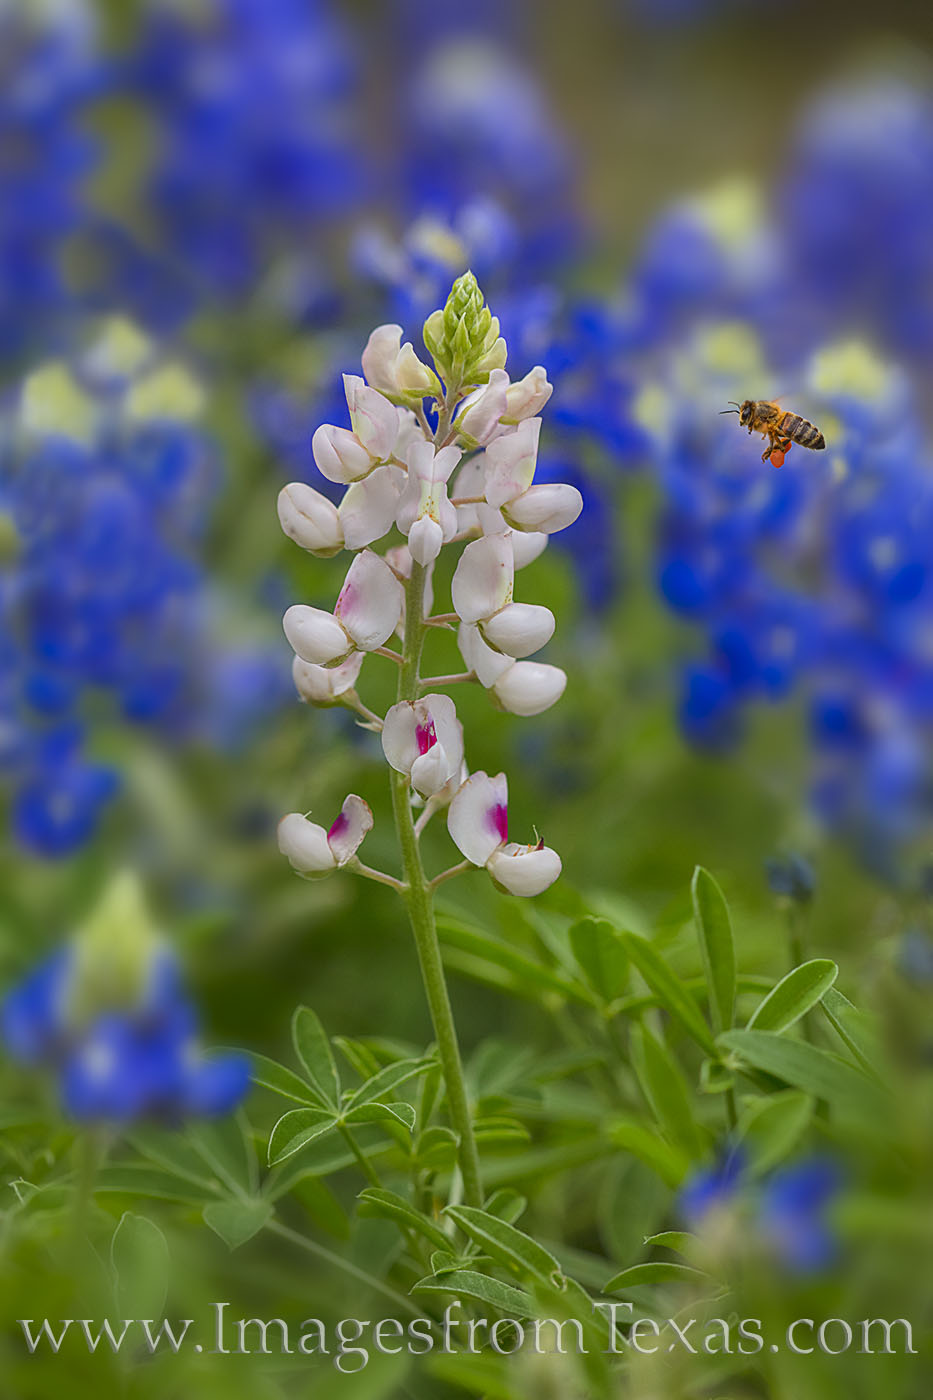 bluebonnets, whitebonnets, white bonnet, wildflowers, bees, hill country, texas wildflowers, texas blueobonnets, white, blue, portrait